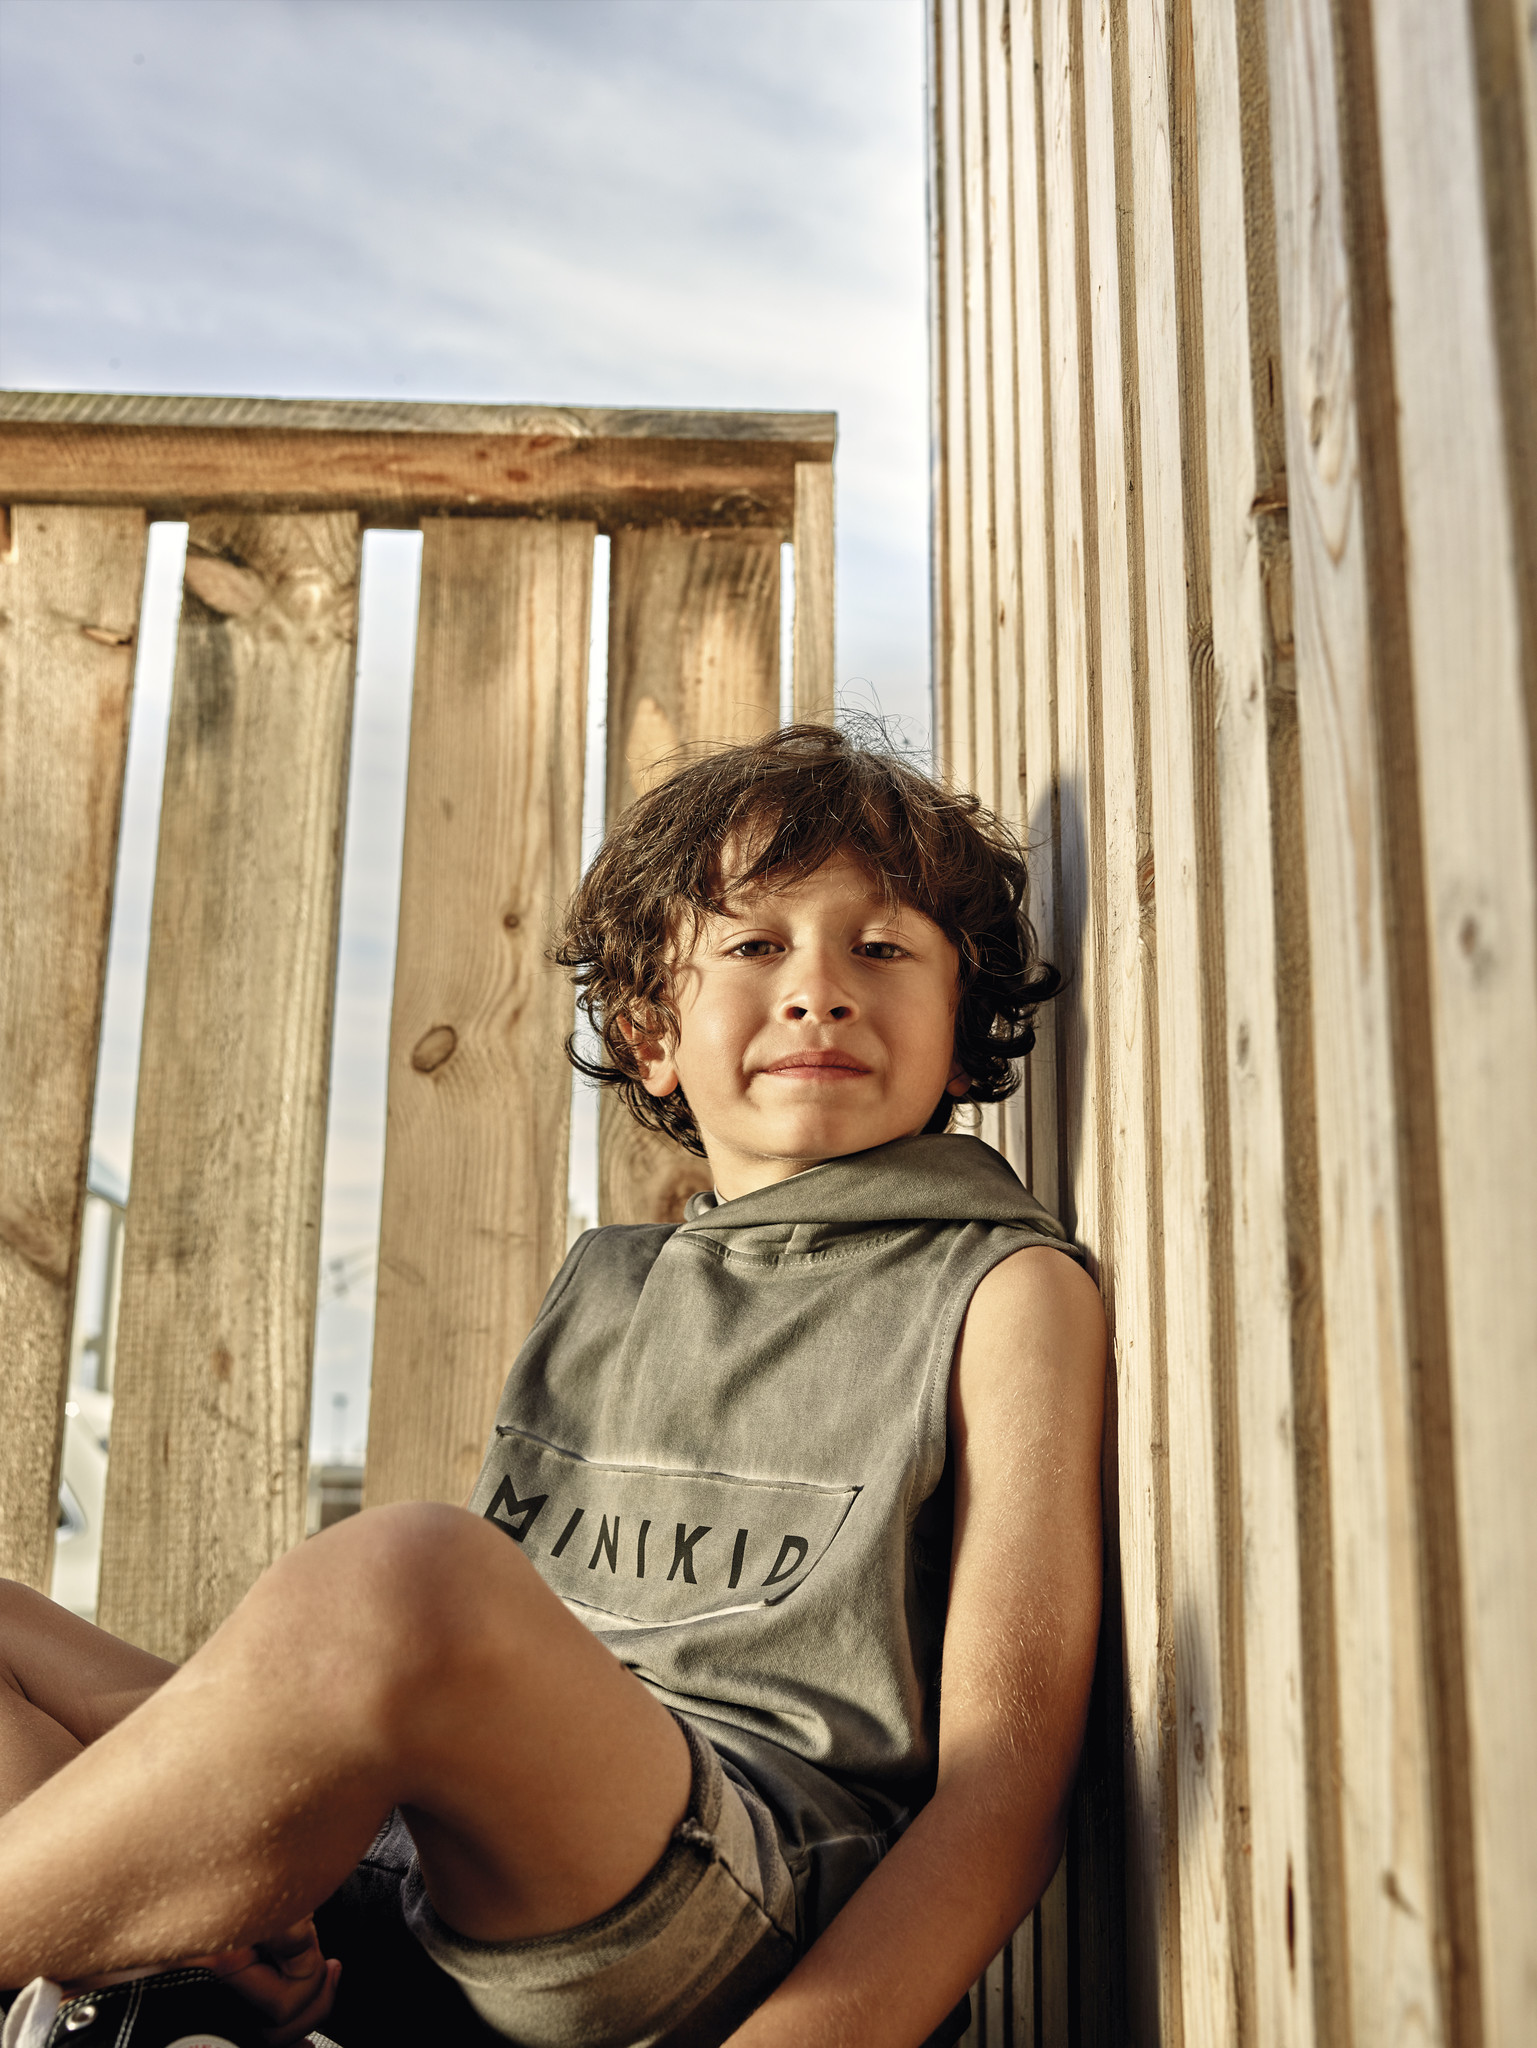 Minikid ACID GREY SHORTS | URBAN CHILDREN'S CLOTHING | MINIKID